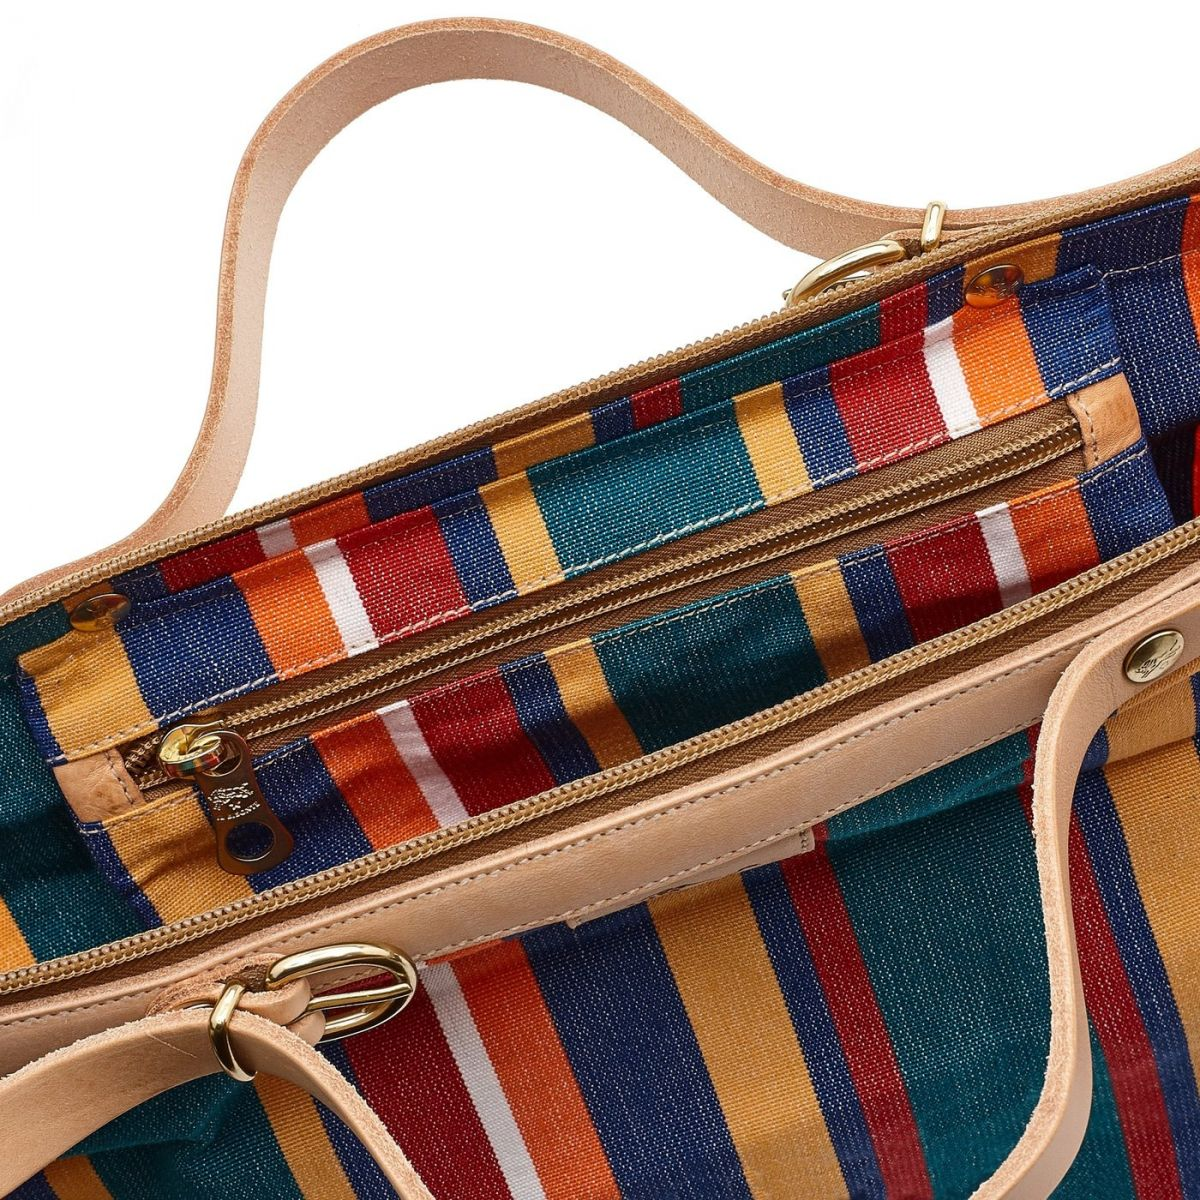 Caramella  - Women's Shoulder Bag  in Striped Cotton Canvas BSH119 color Multicolor | Details